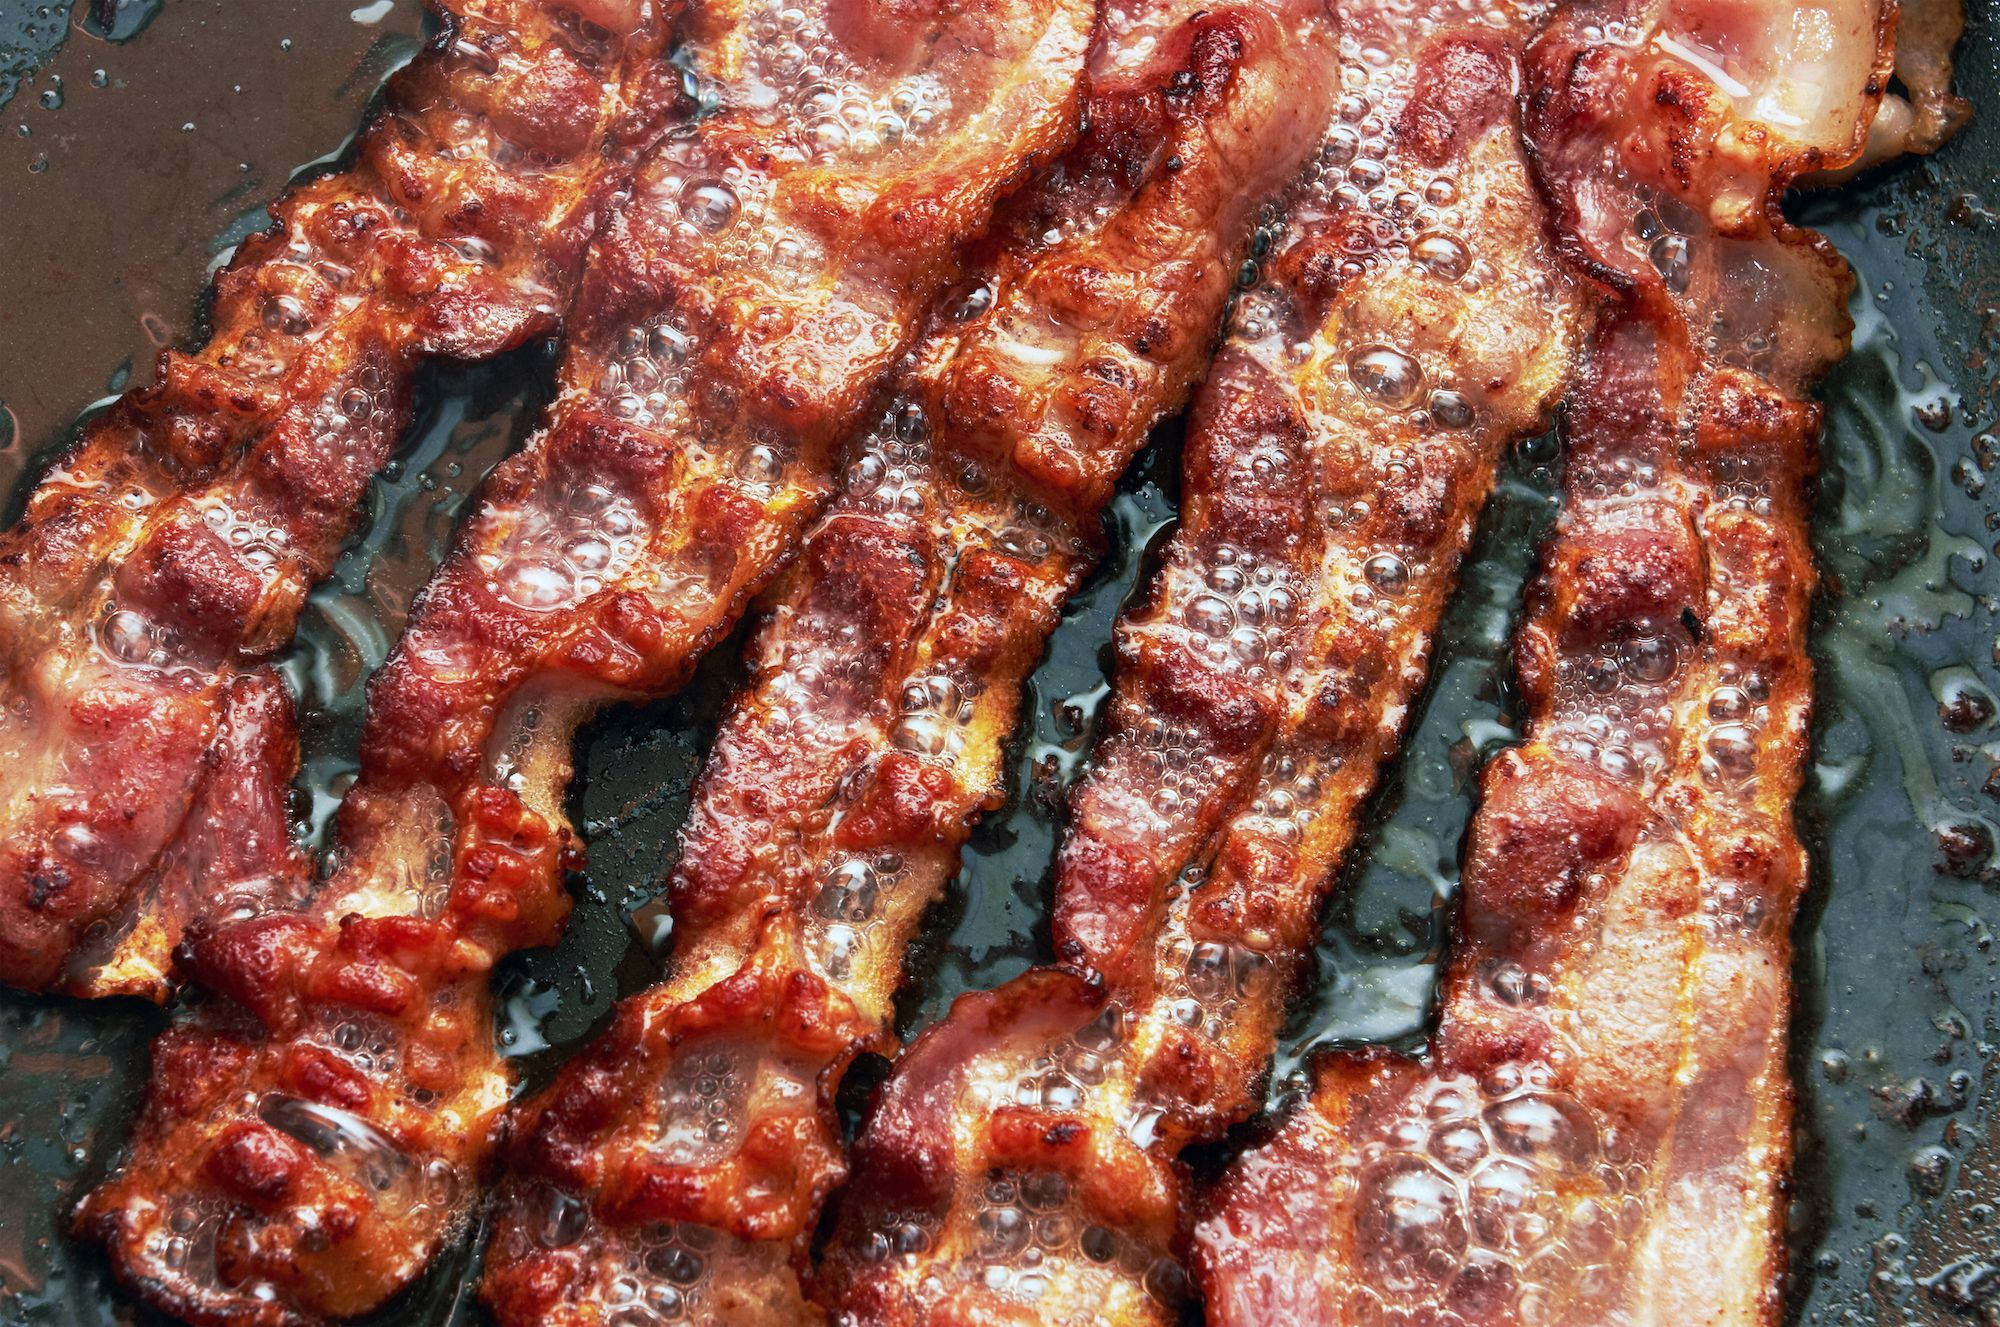 How To Make Bacon Sauce Out Of Leftover Bacon Grease For Breakfast What To Do With Bacon Grease